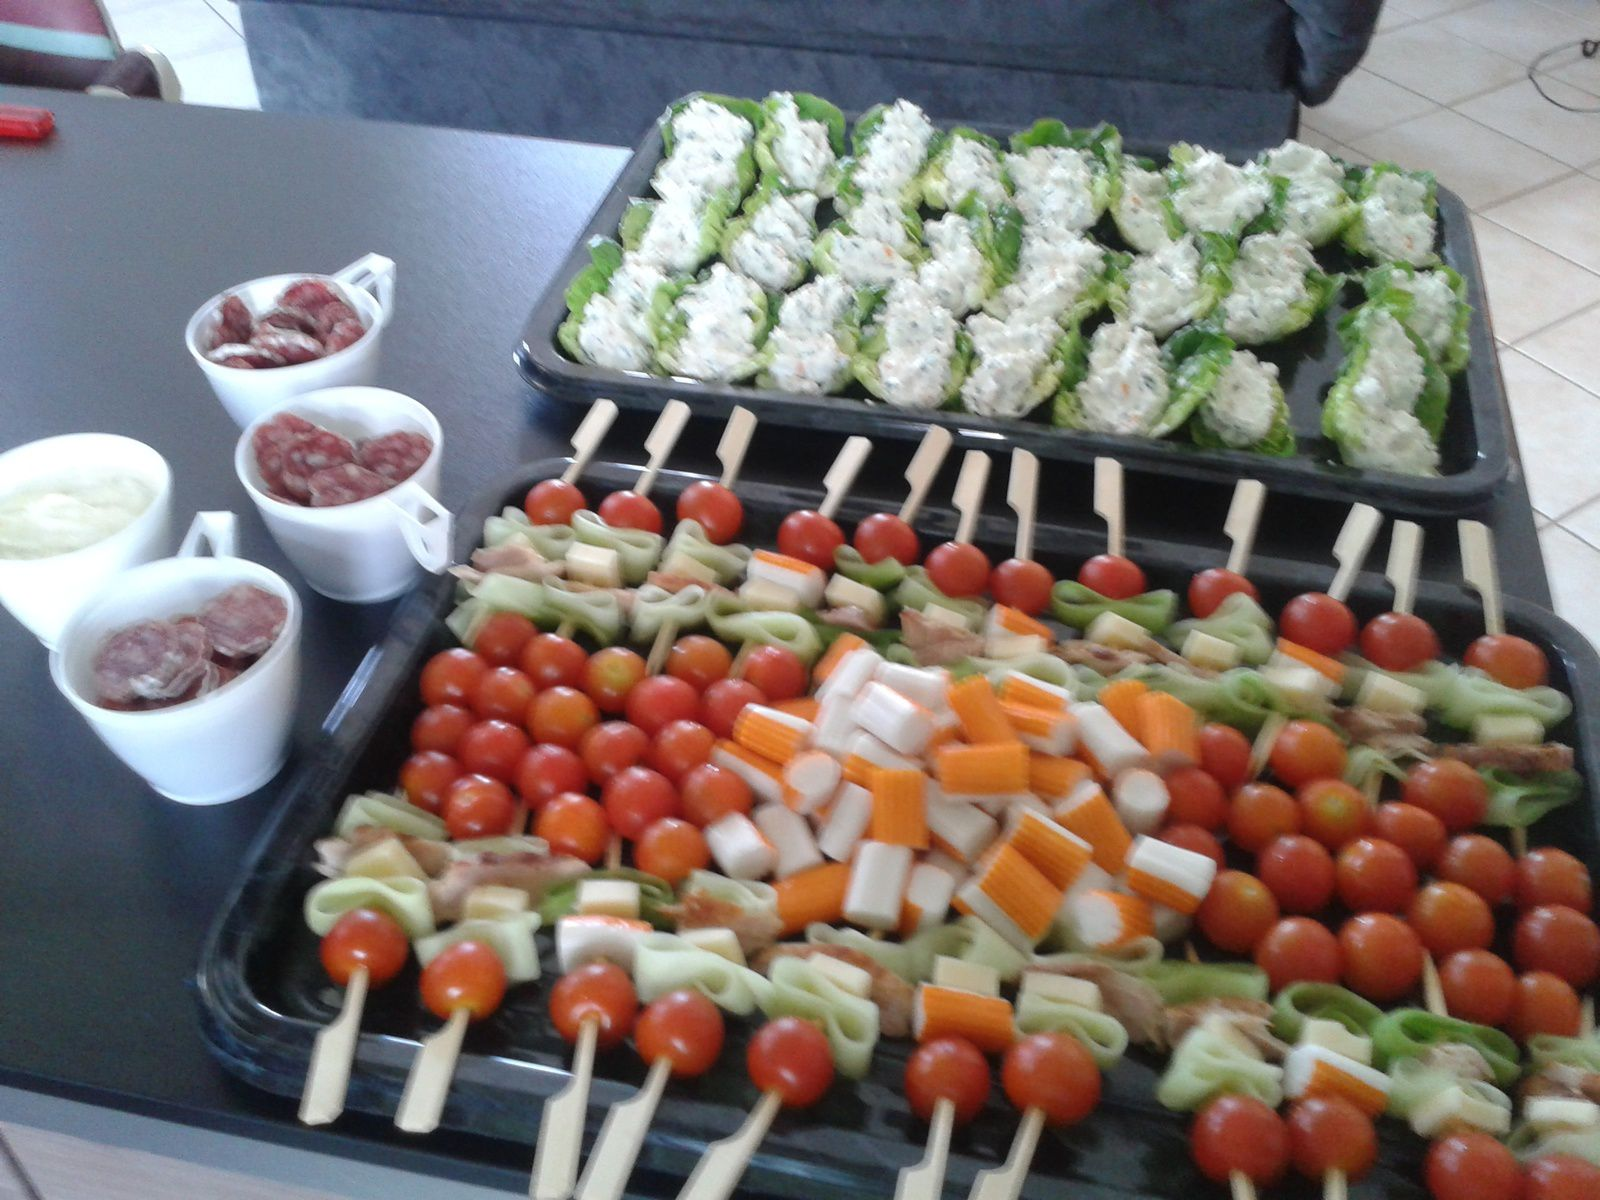 Aperitif entre amis just - Presentation de brochette de fruits ...